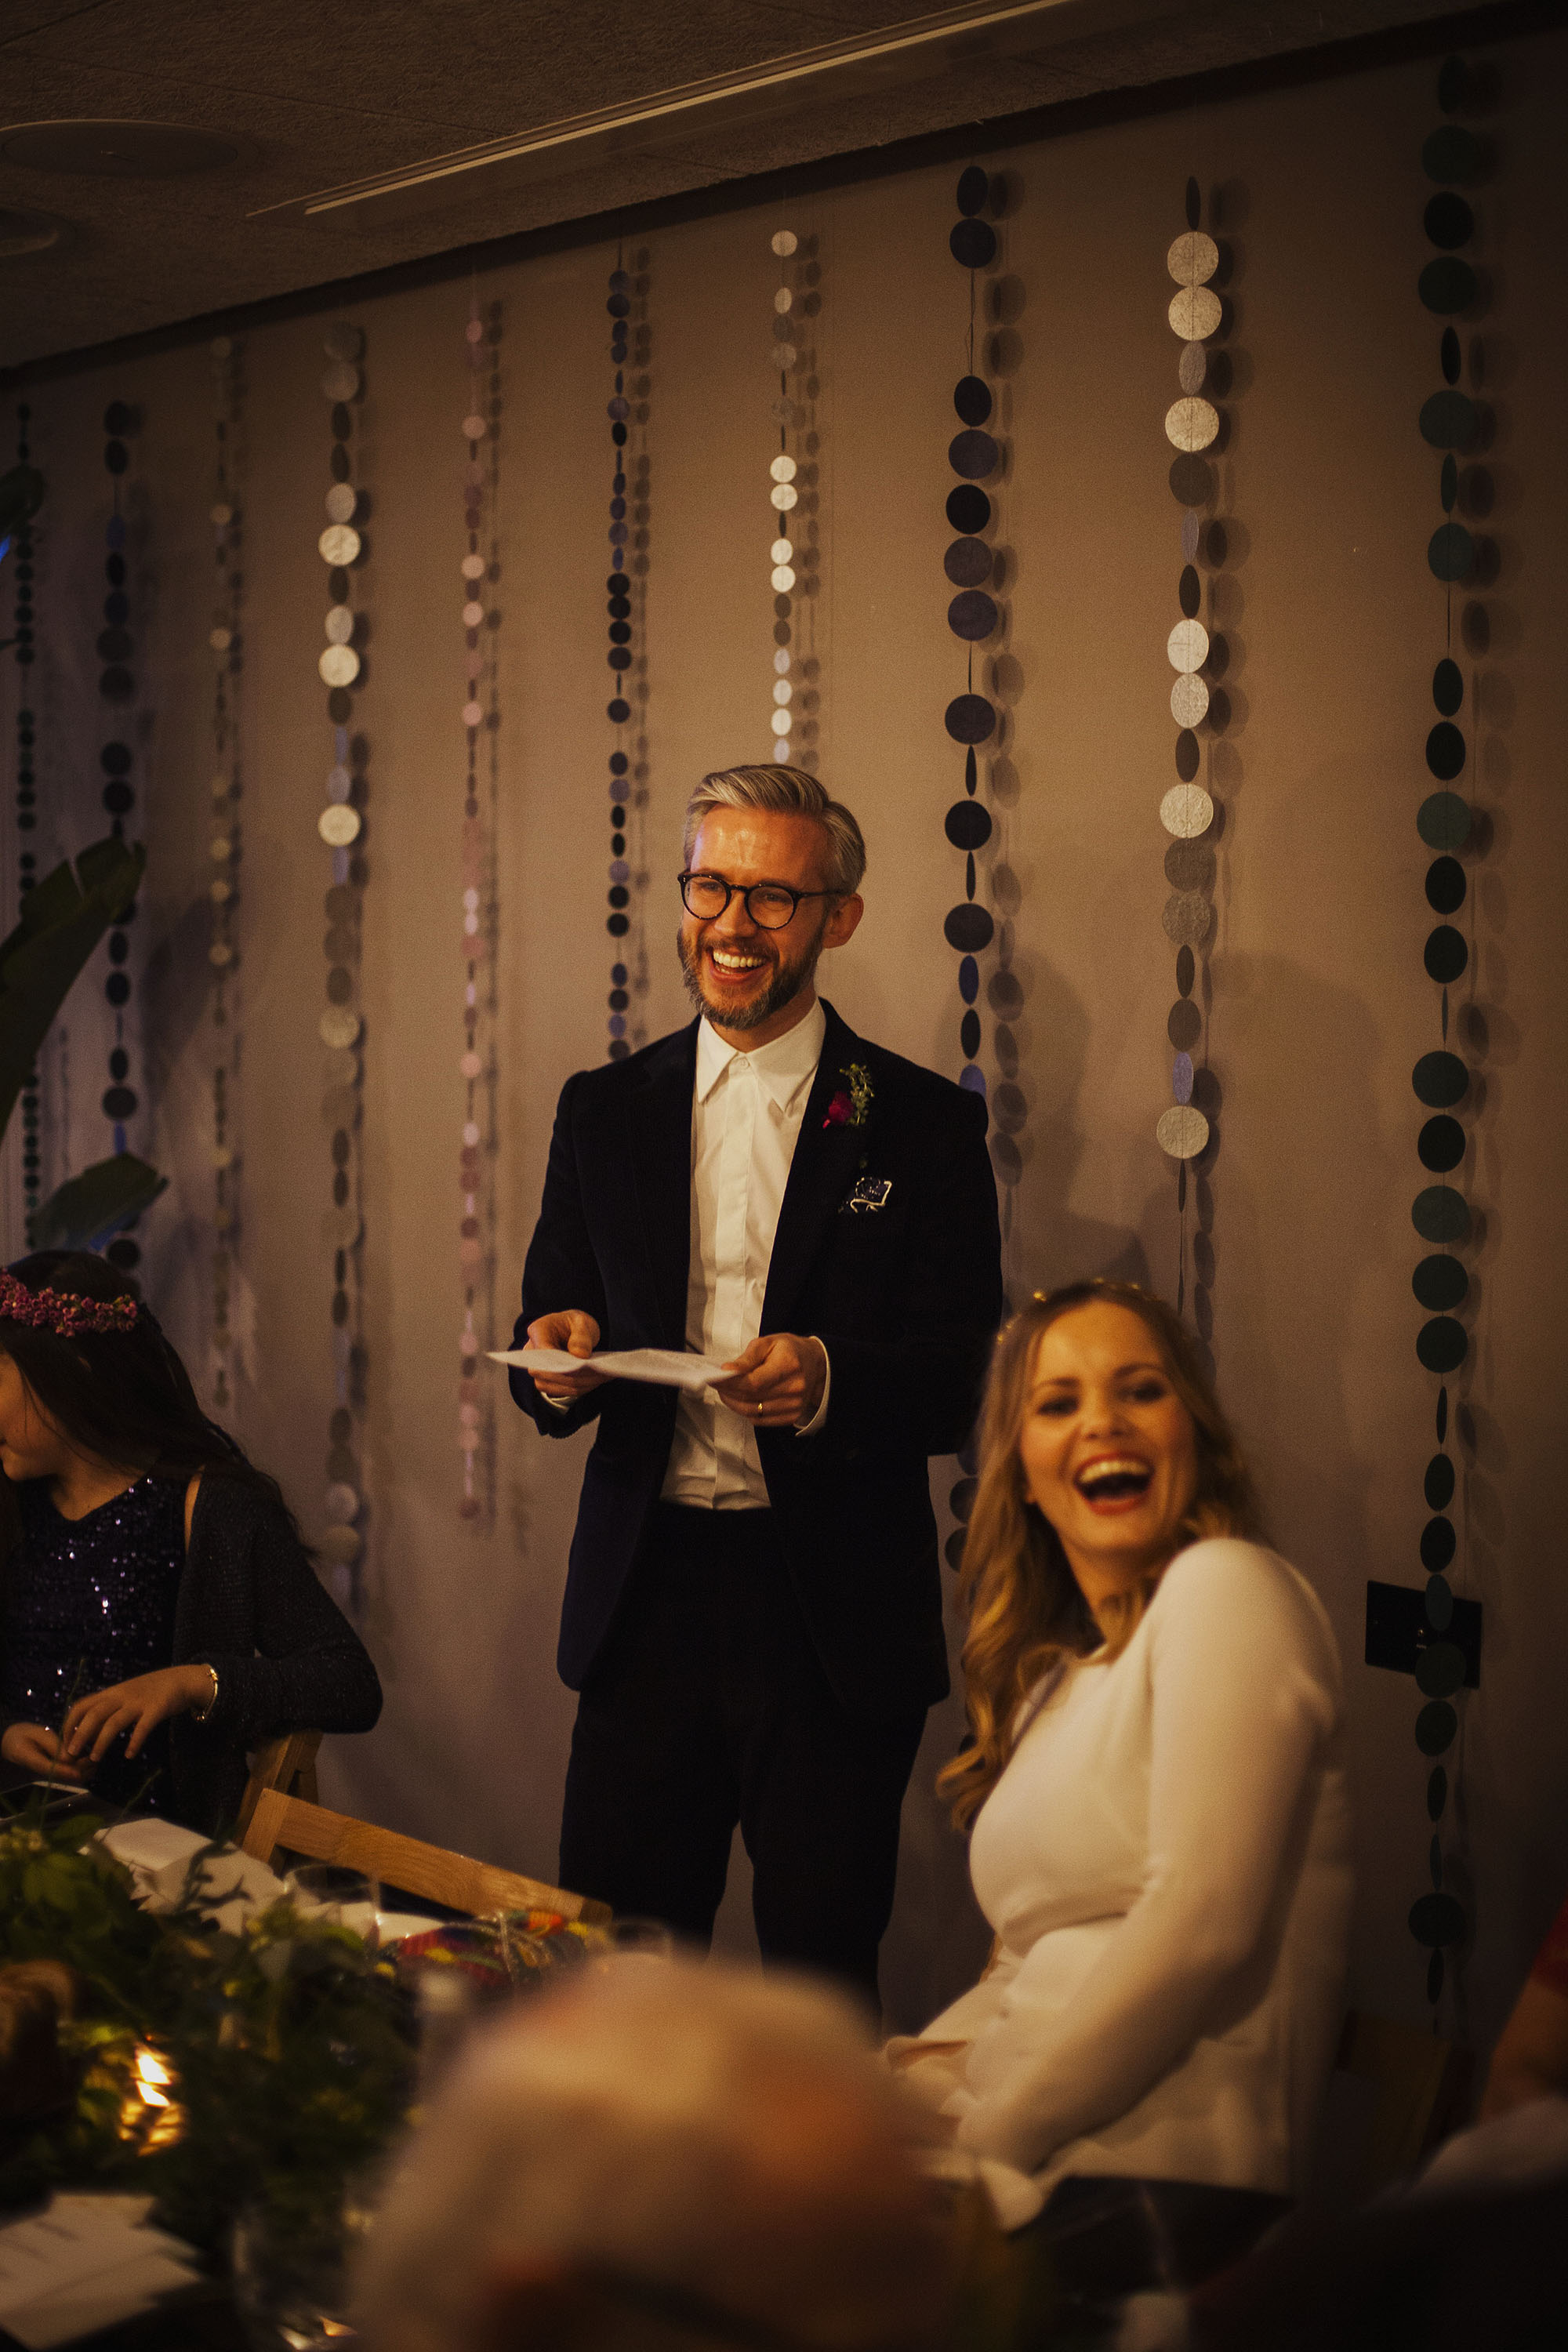 grooms speech at wedding at the ace hotel london